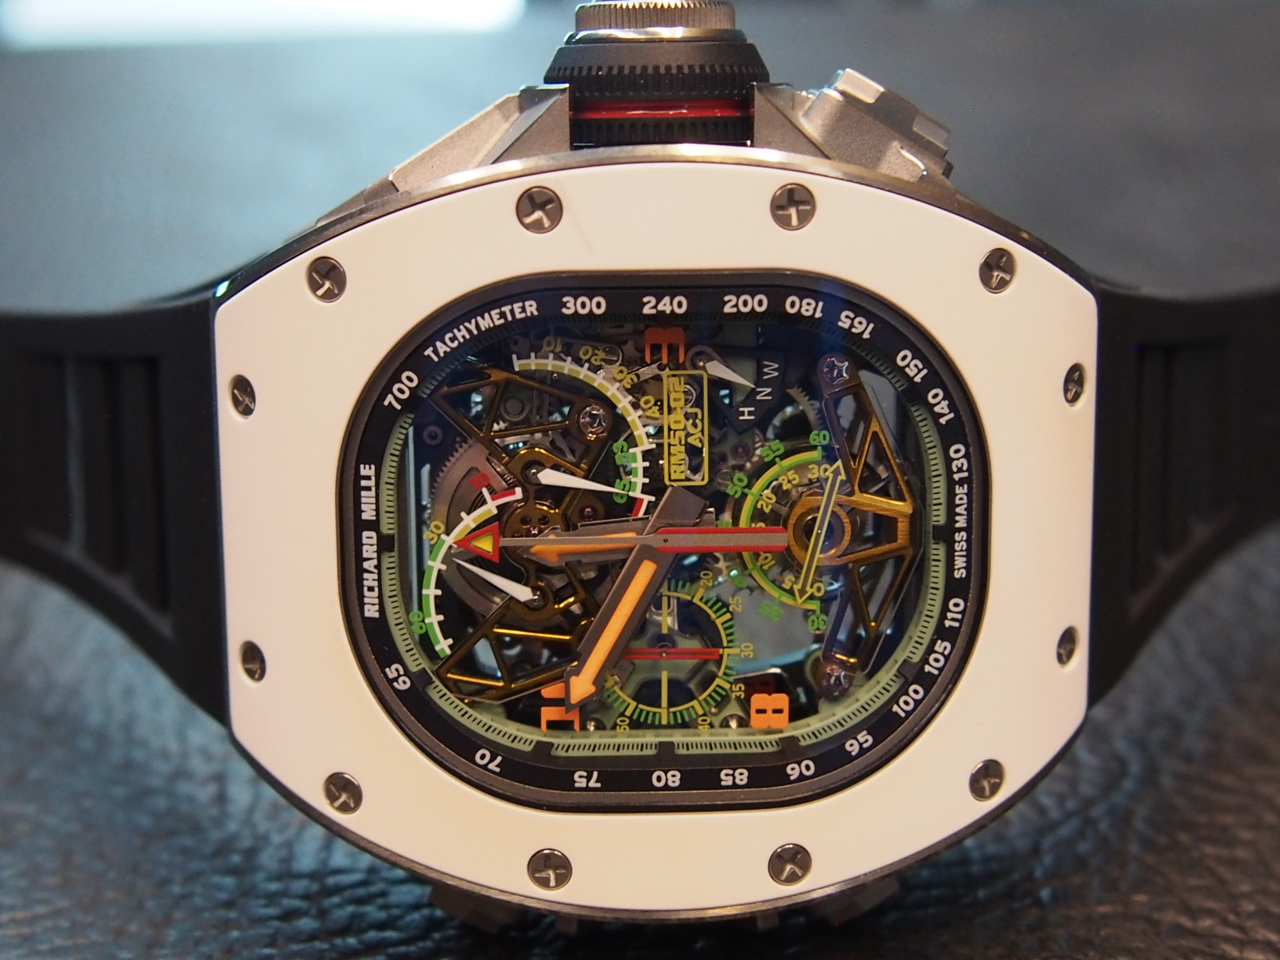 The new watch is the result of a collaboration between Mille and ACJ (Airbus)